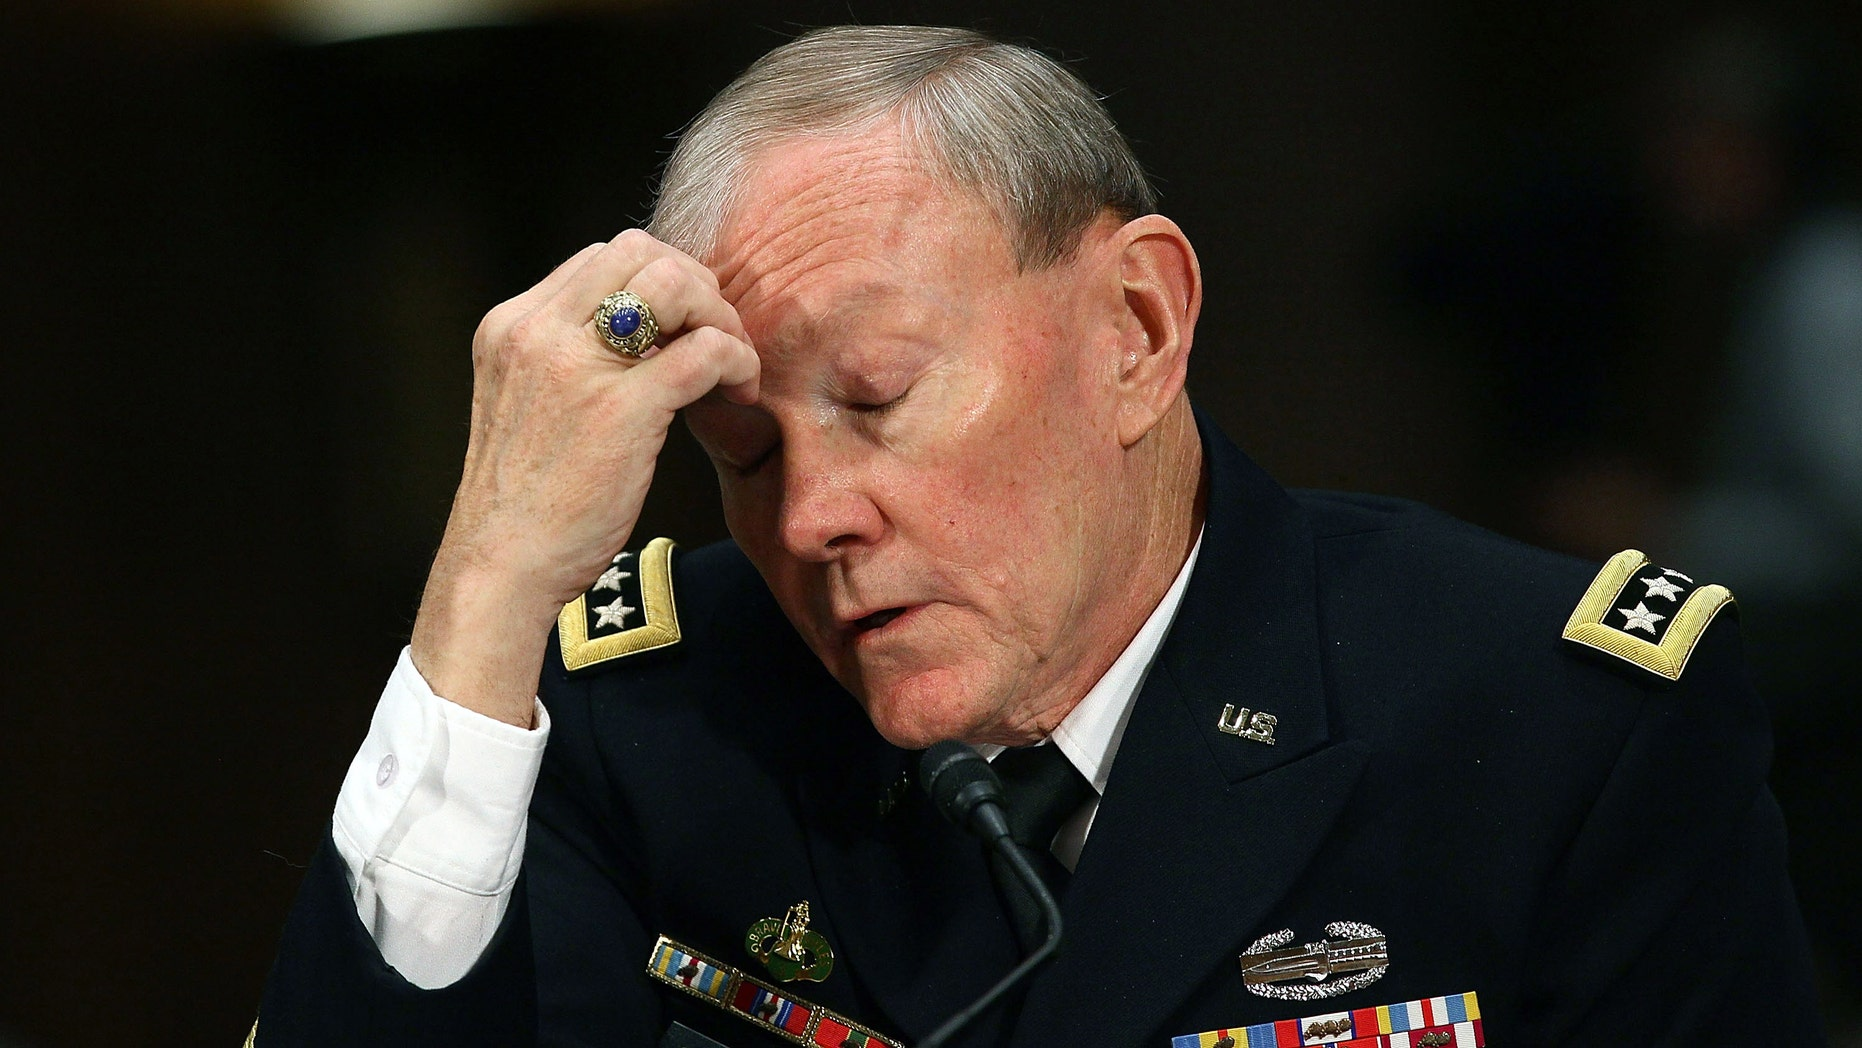 Chairman of the Joint Chiefs of Staff Gen. Martin Dempsey. (Photo by Mark Wilson/Getty Images)